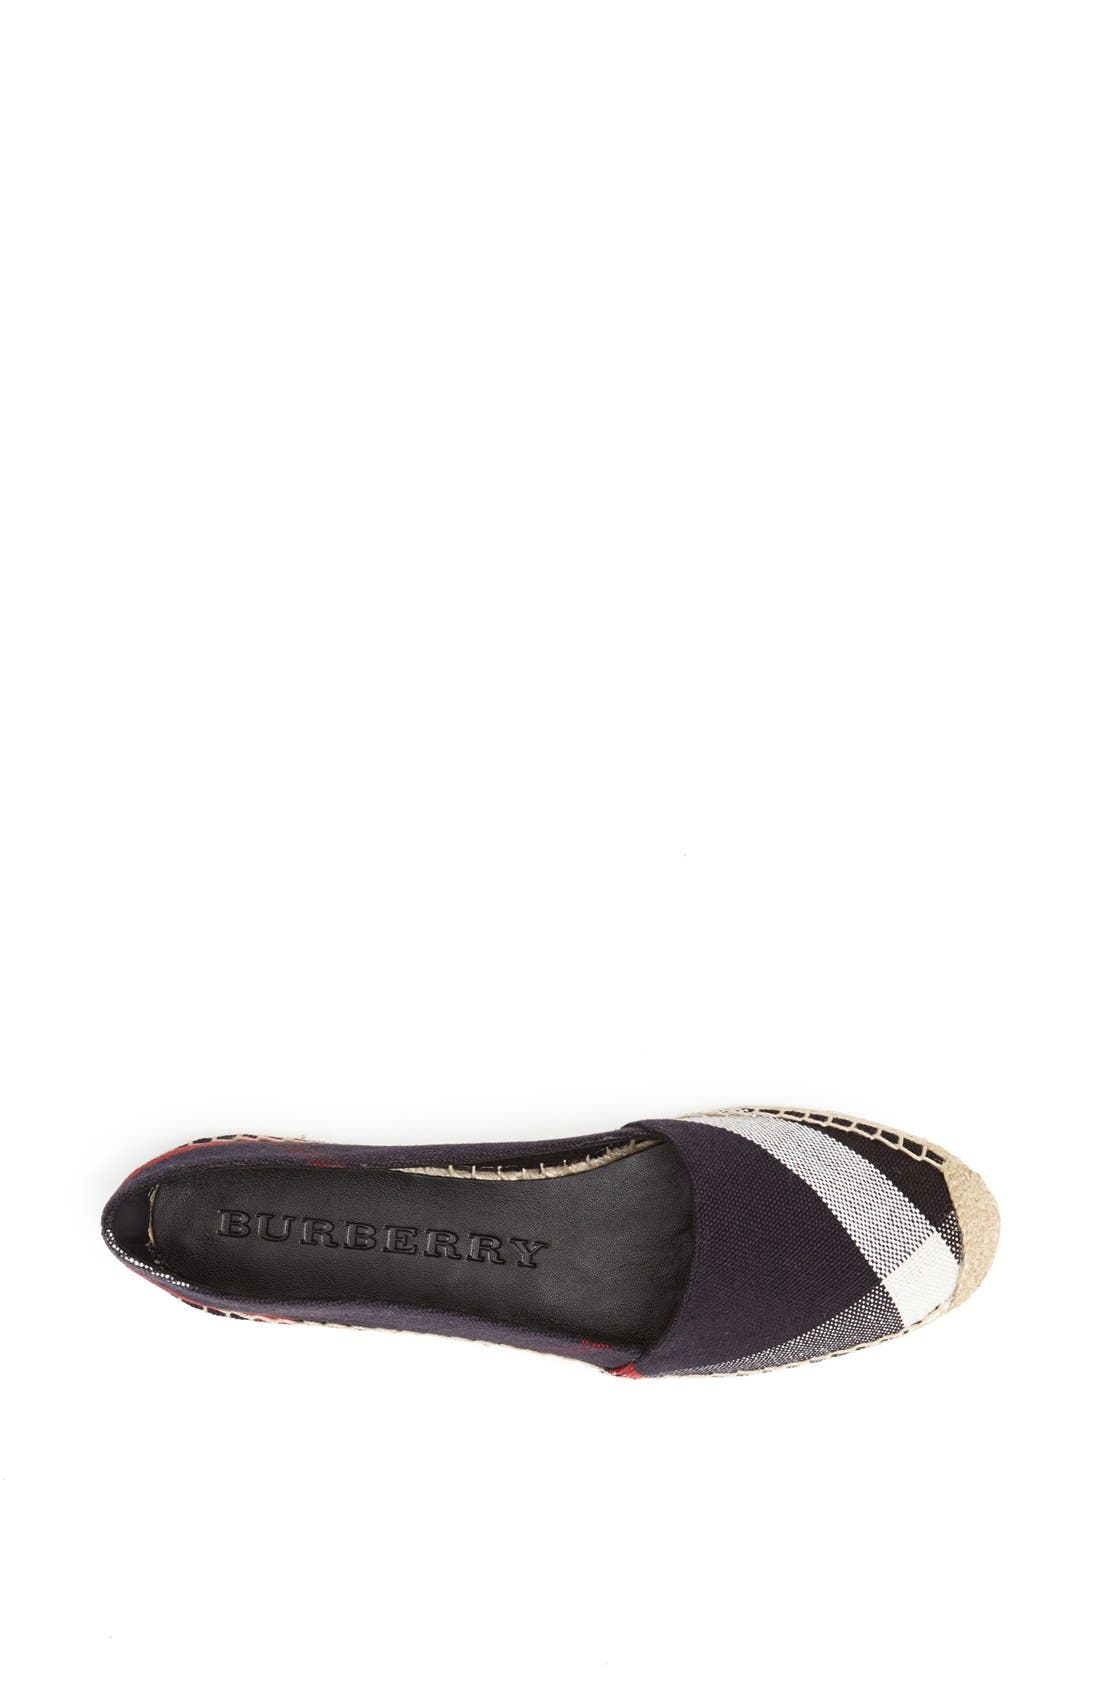 Alternate Image 3  - Burberry Hodgeson Check Print Espadrille Flat (Women)